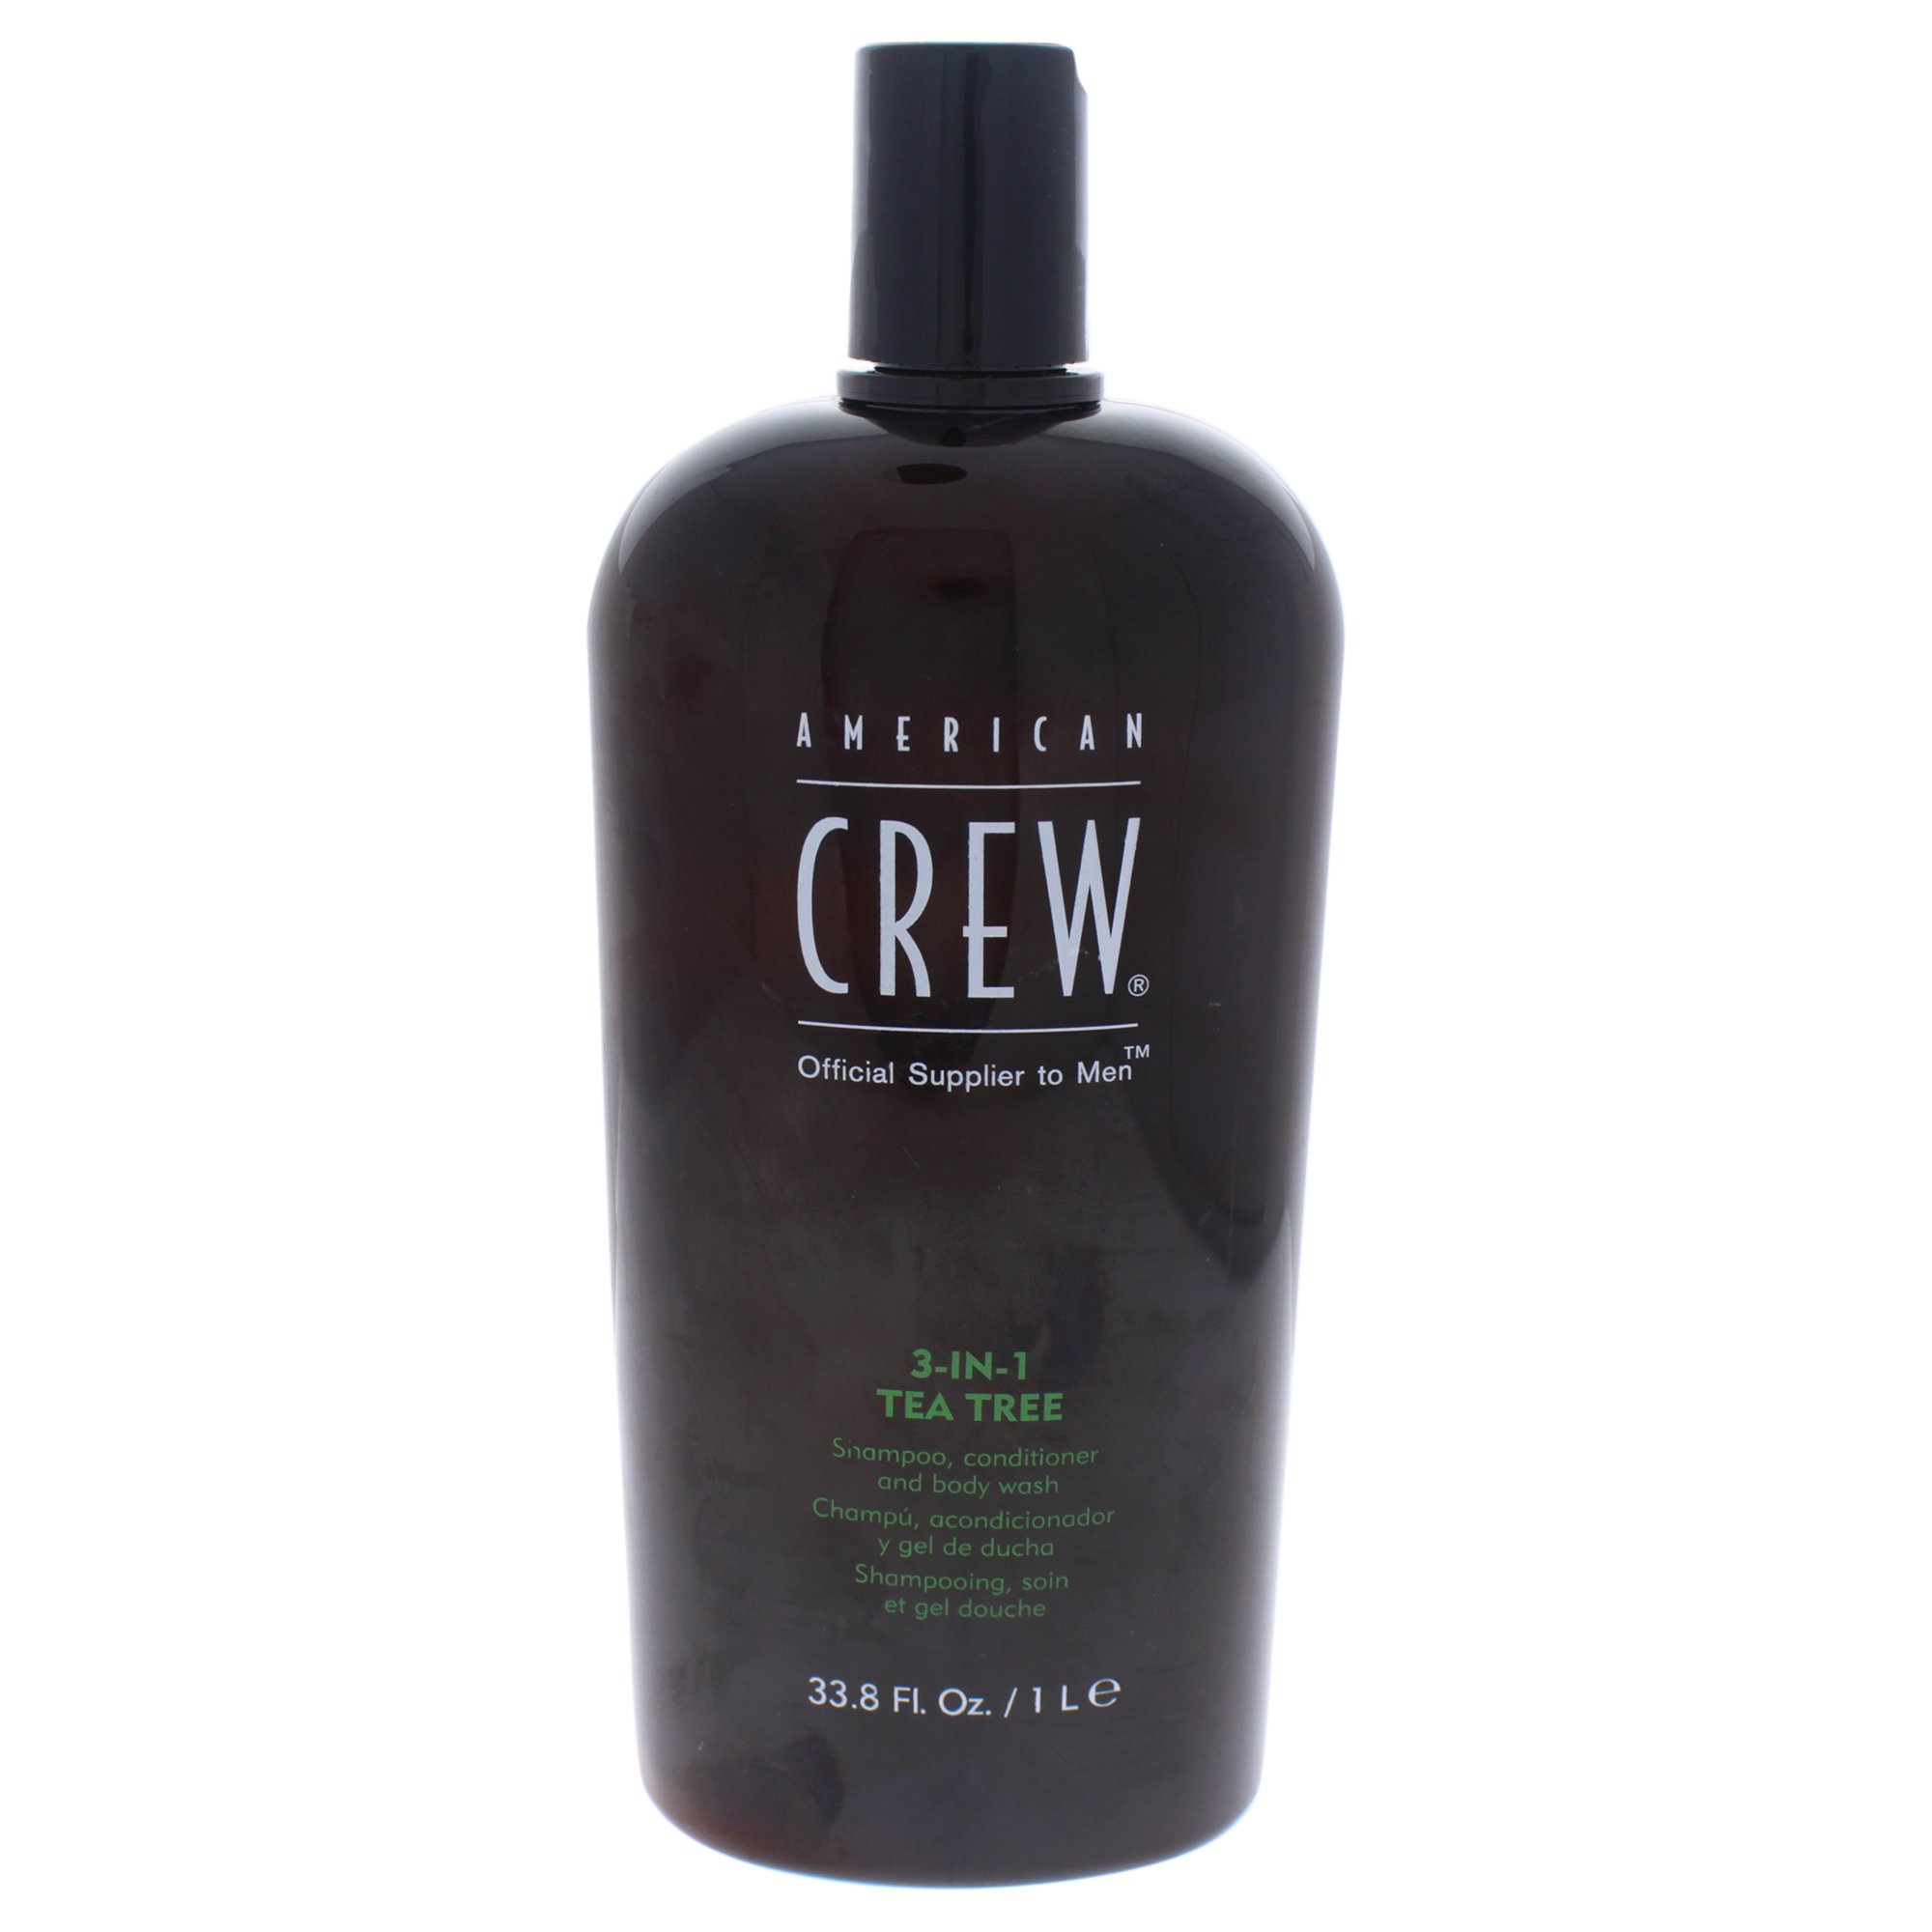 American Crew 3-In-1 Shampoo Conditioner & Bodywash, Tea Tree, 33.8 Ounce by AMERICAN CREW